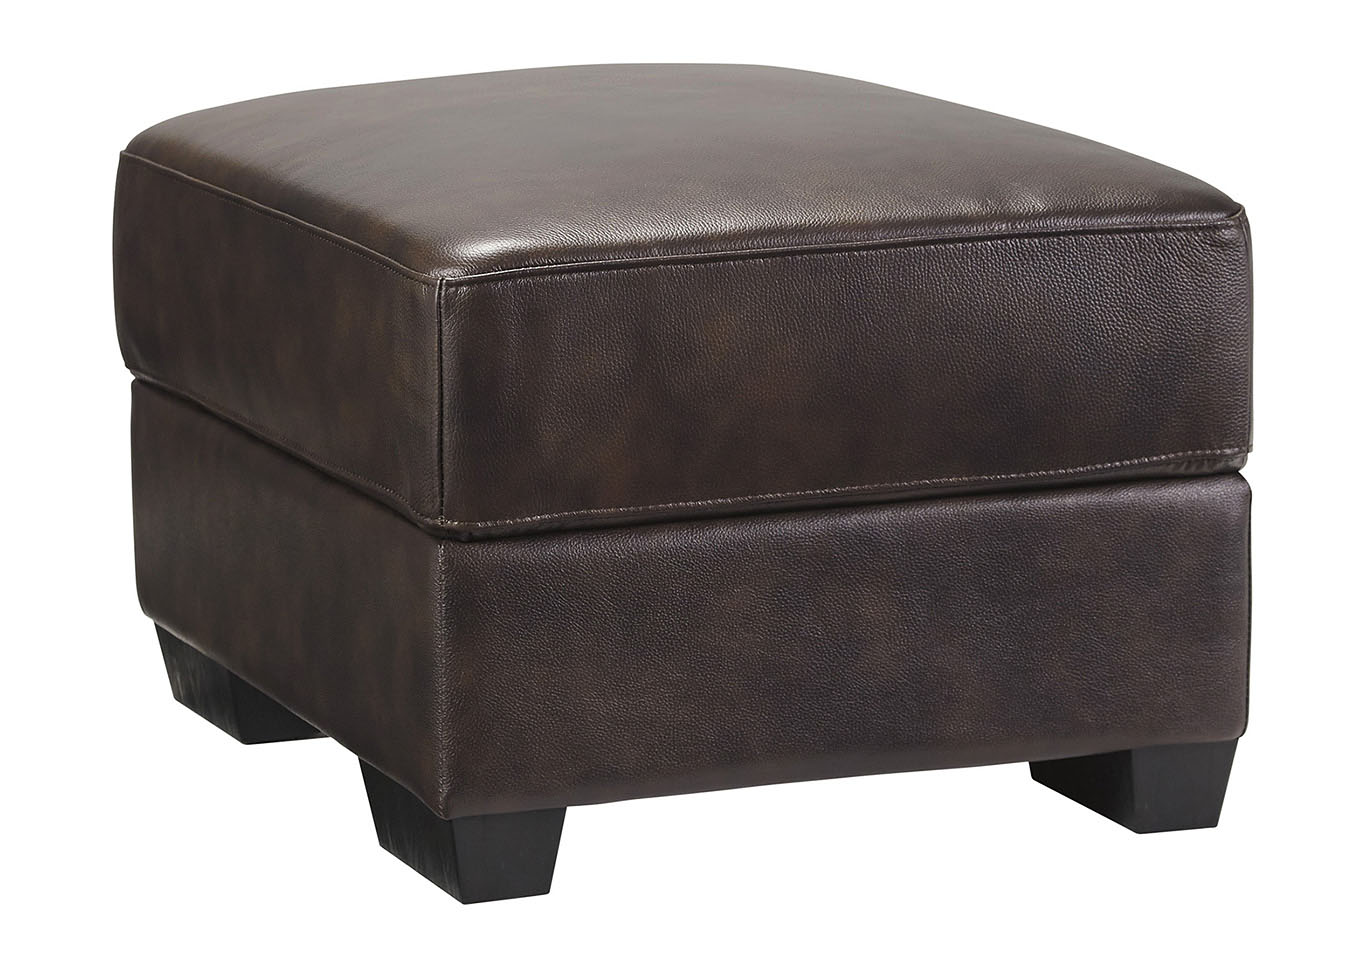 Mellen Walnut Ottoman,Signature Design By Ashley